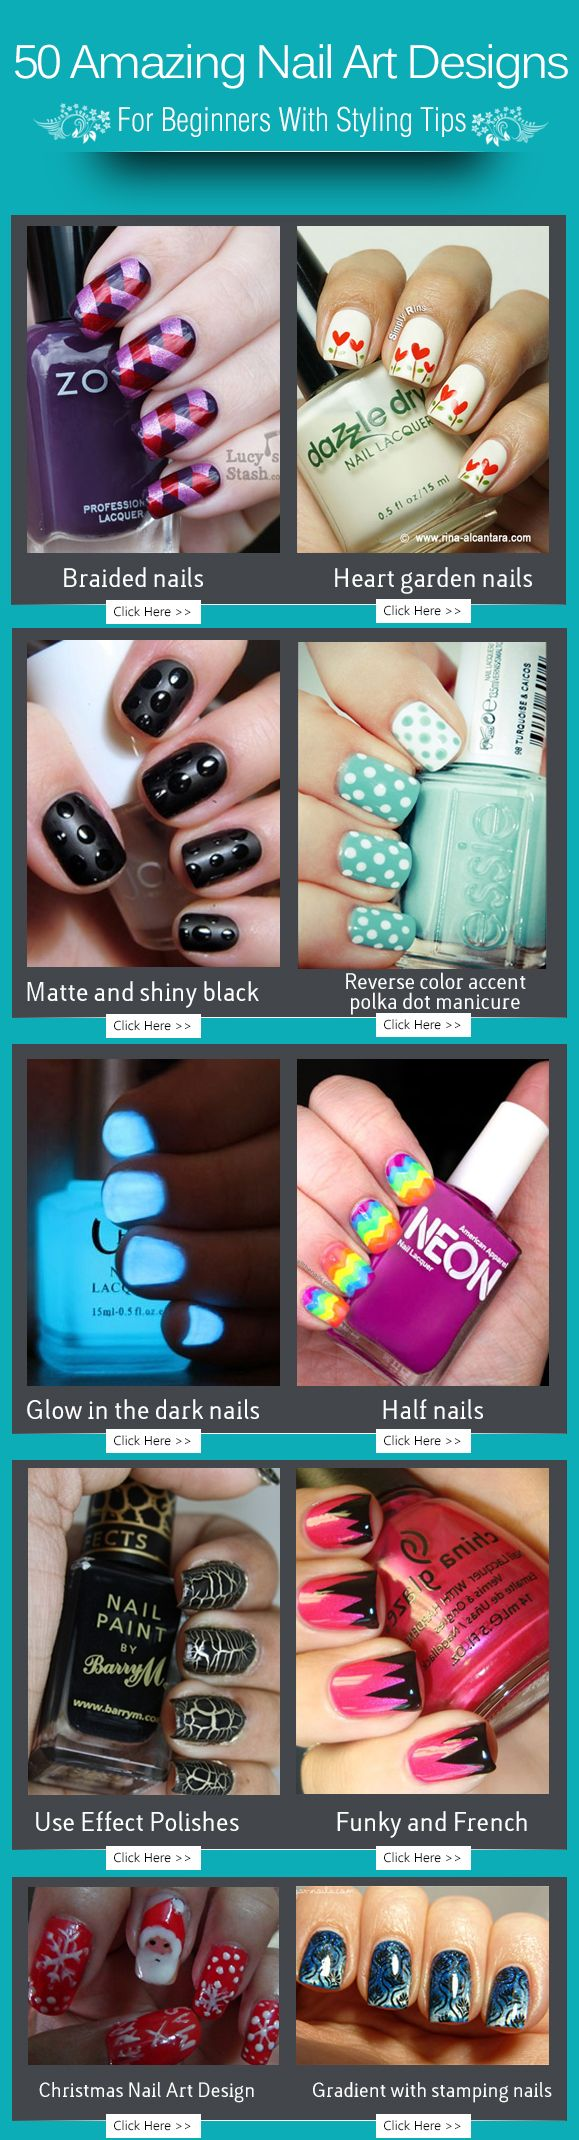 best nails images on pinterest nail design cute nails and